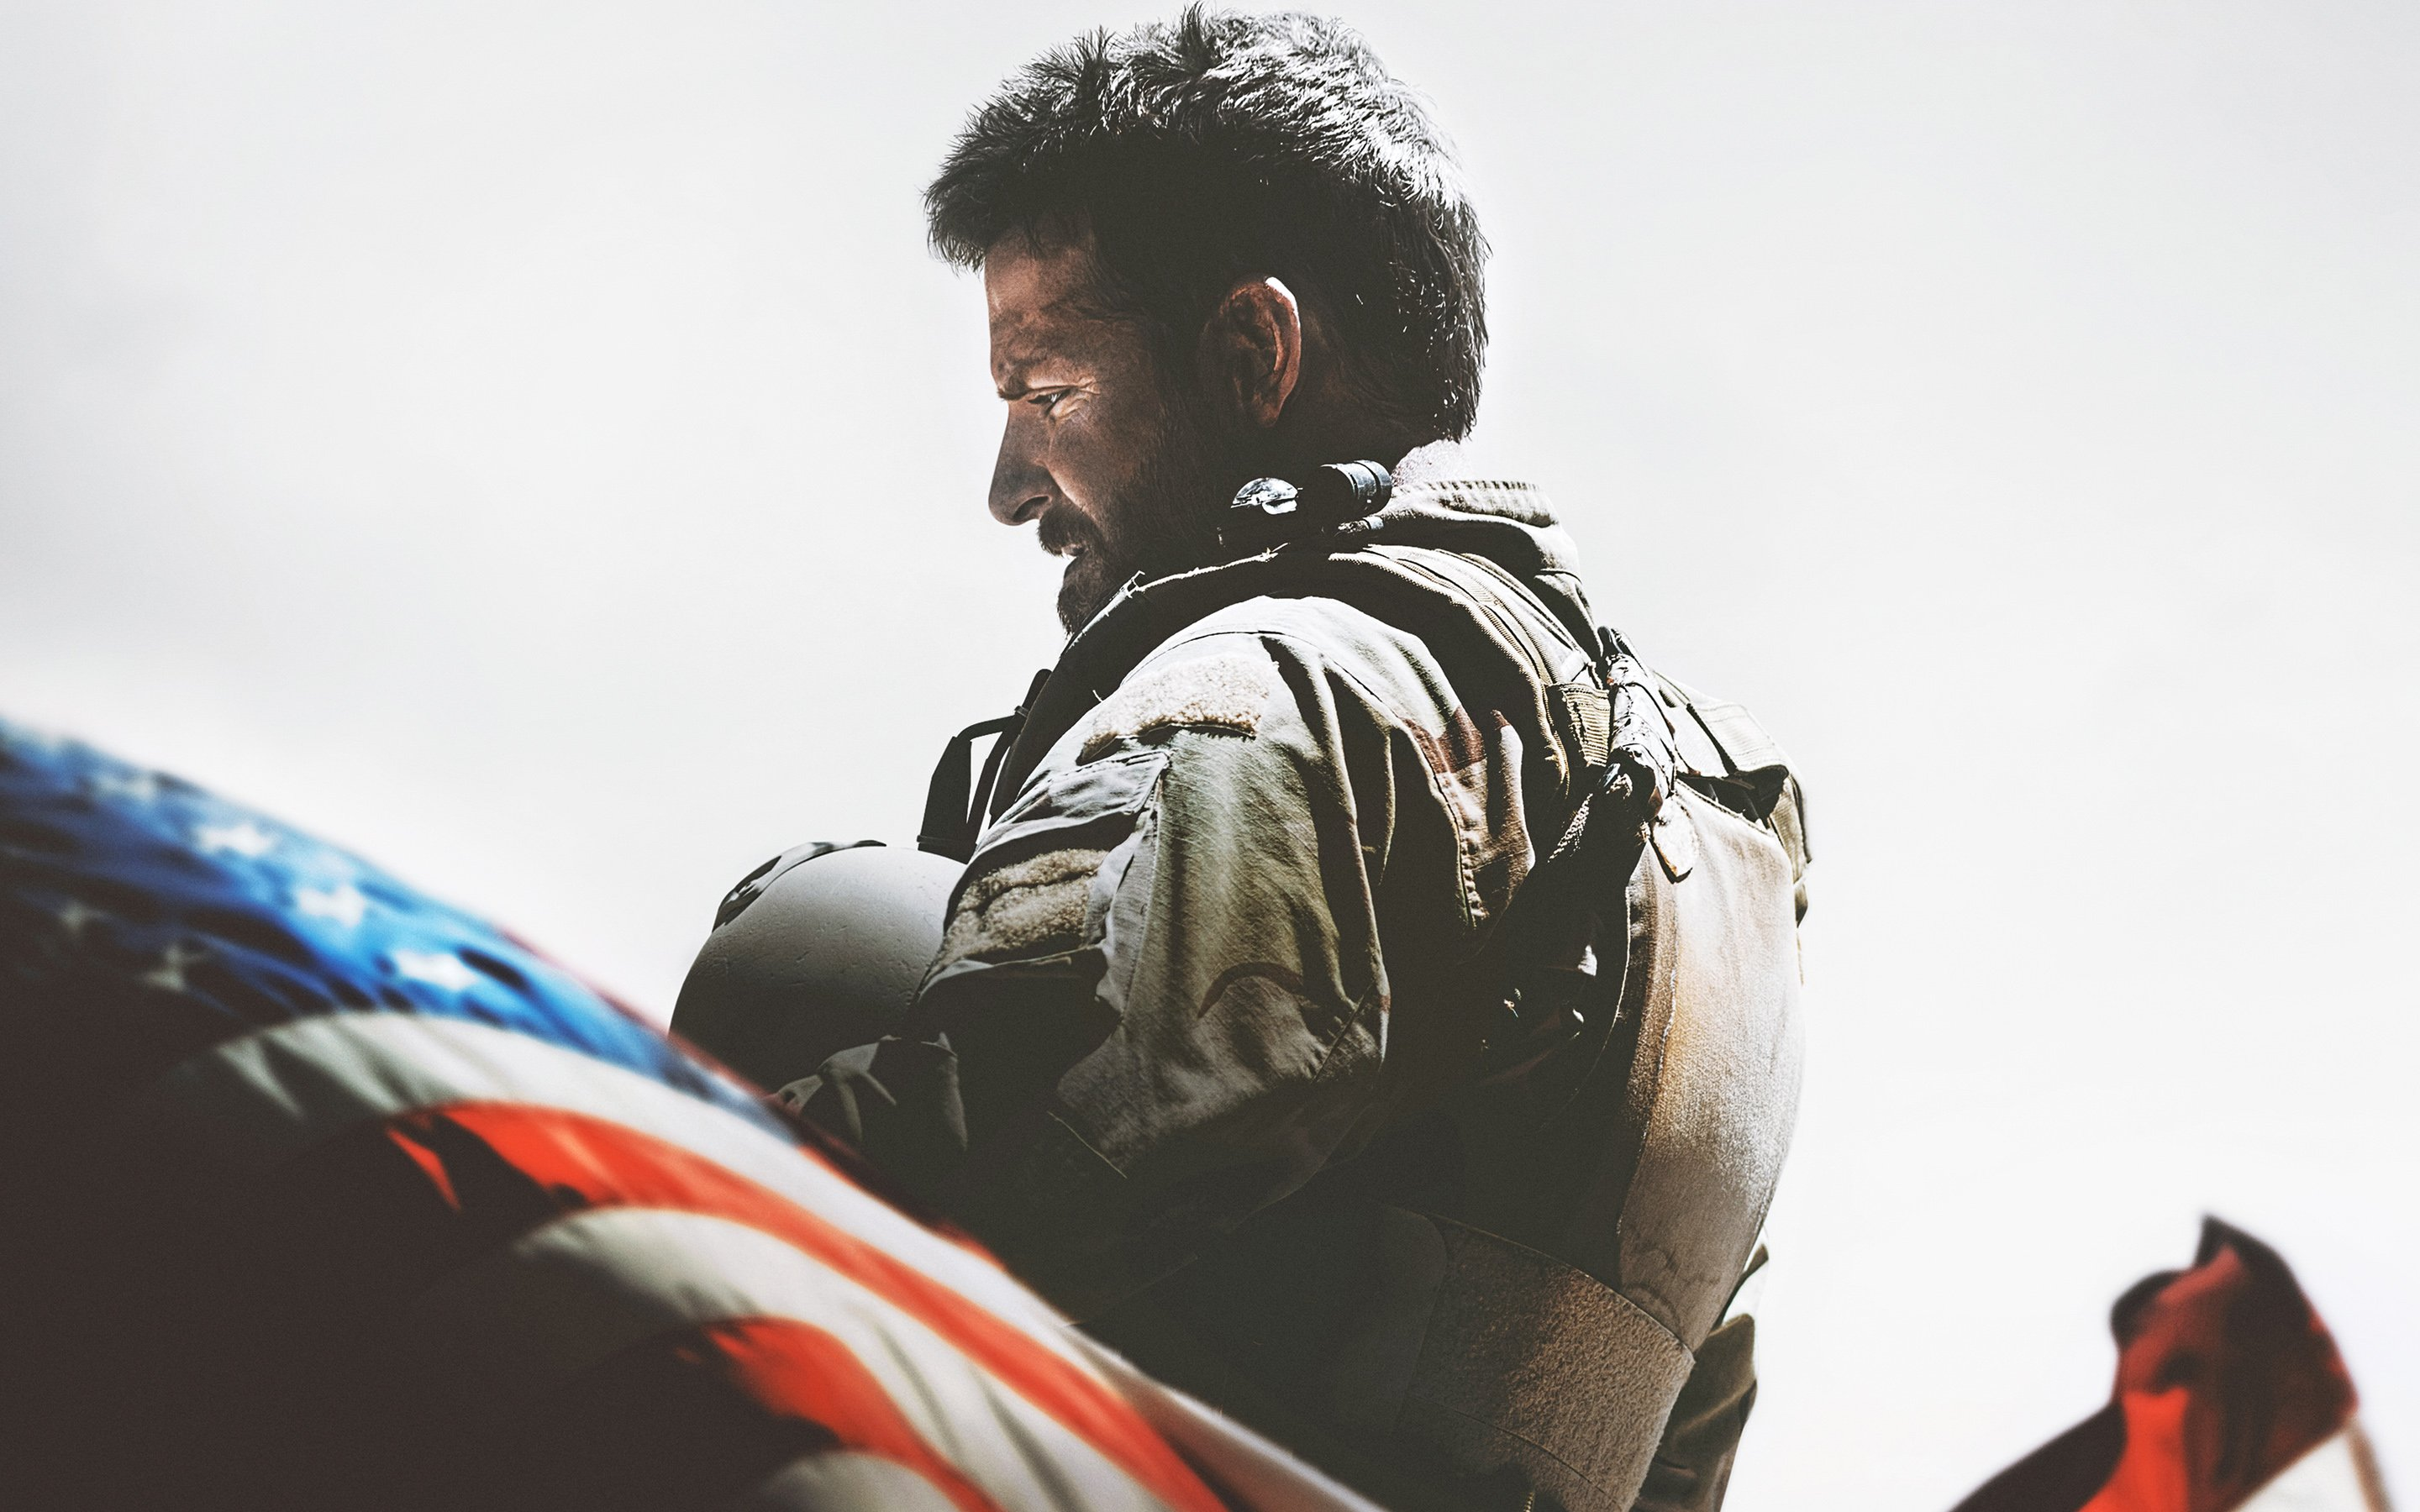 Navy seal sniper wallpaper wallpapersafari american sniper biography military war fighting navy seal action clint 2880x1800 thecheapjerseys Choice Image